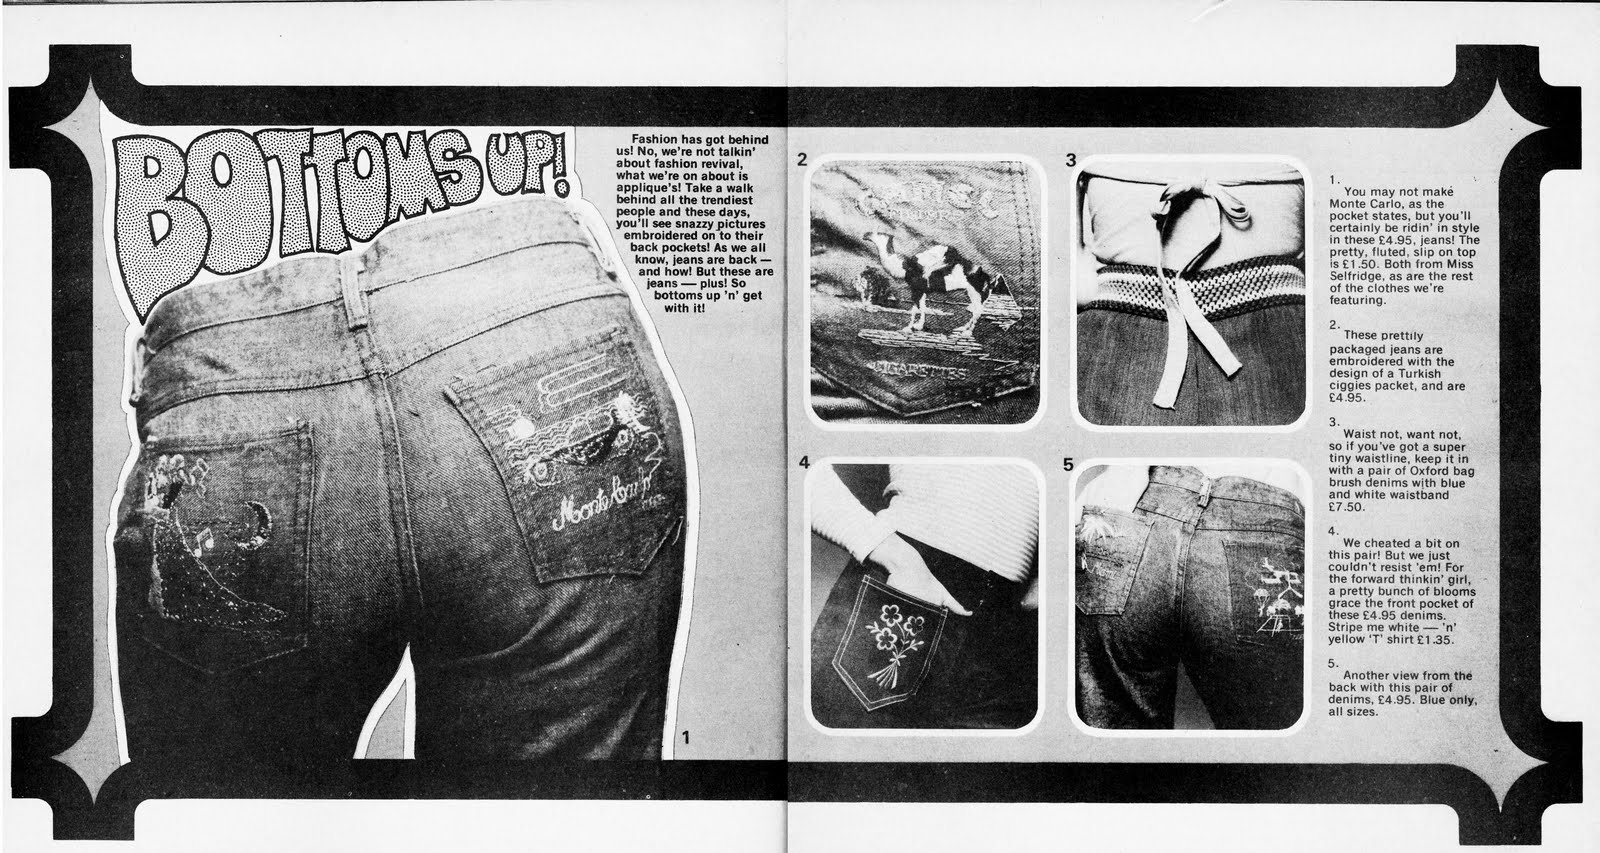 70s Fads retro dundee: denim pocket pictures - early 70's